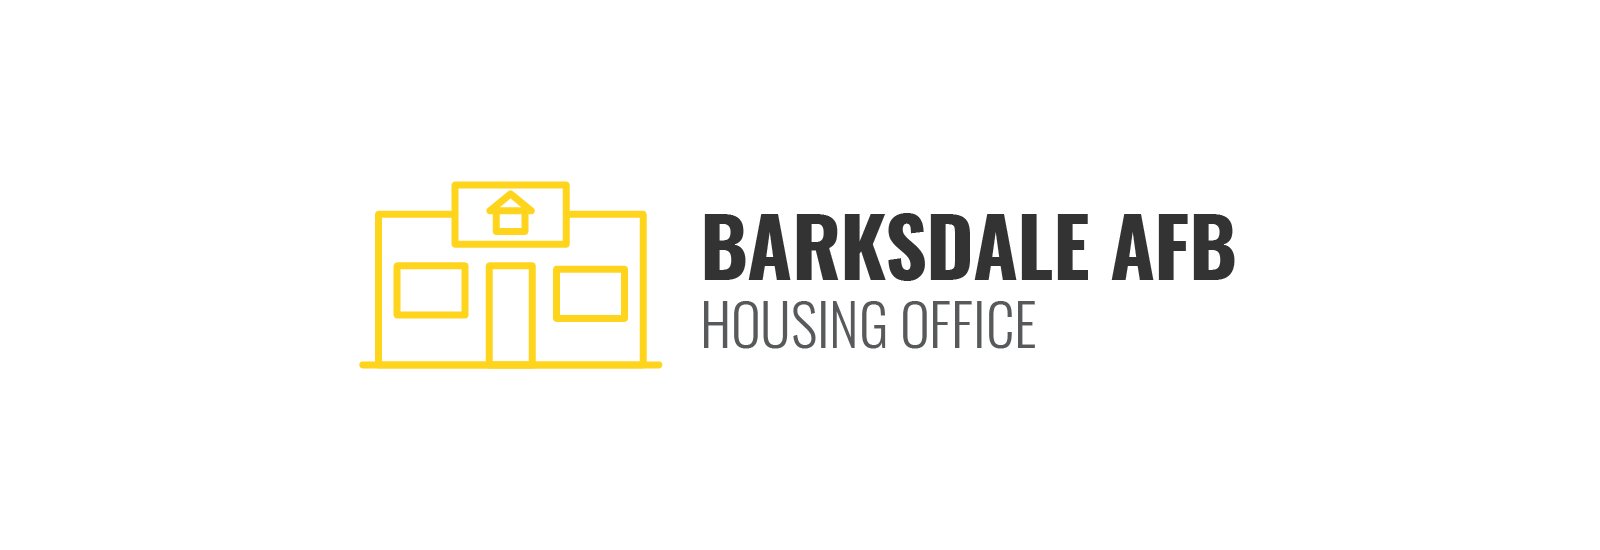 Barksdale AFB Housing Office